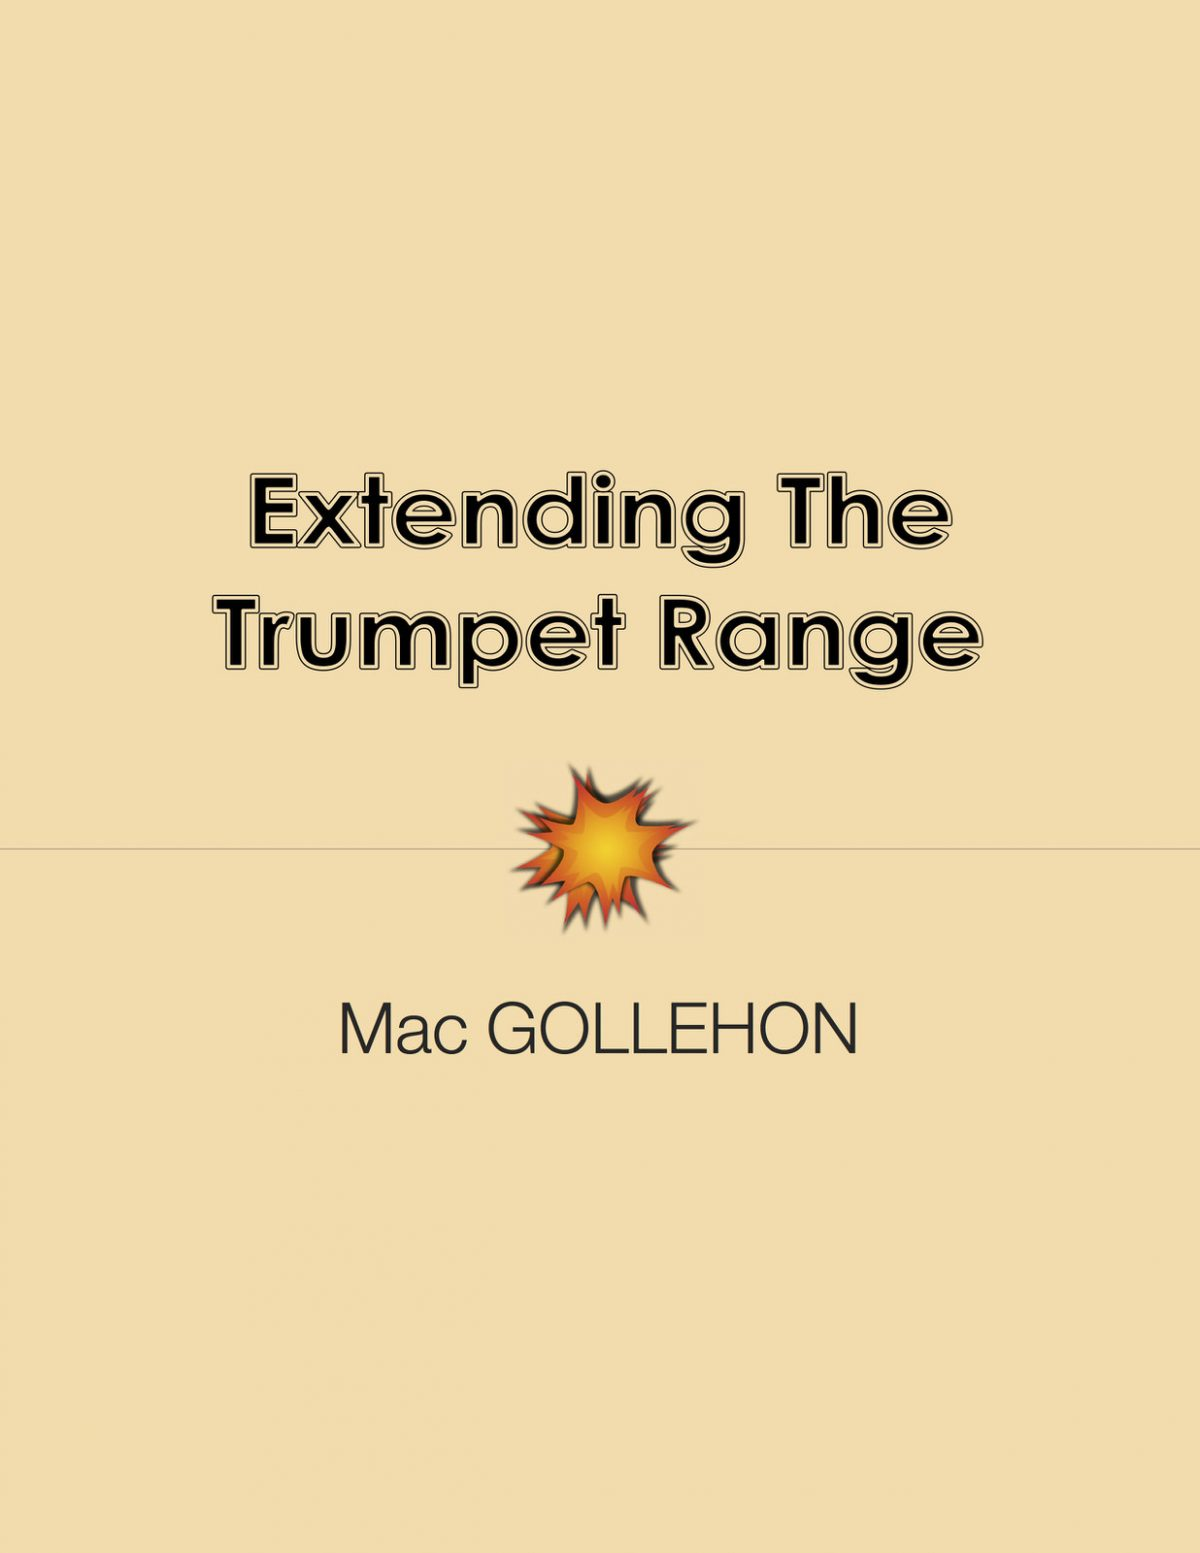 Gollehon, Extending The Trumpet Range